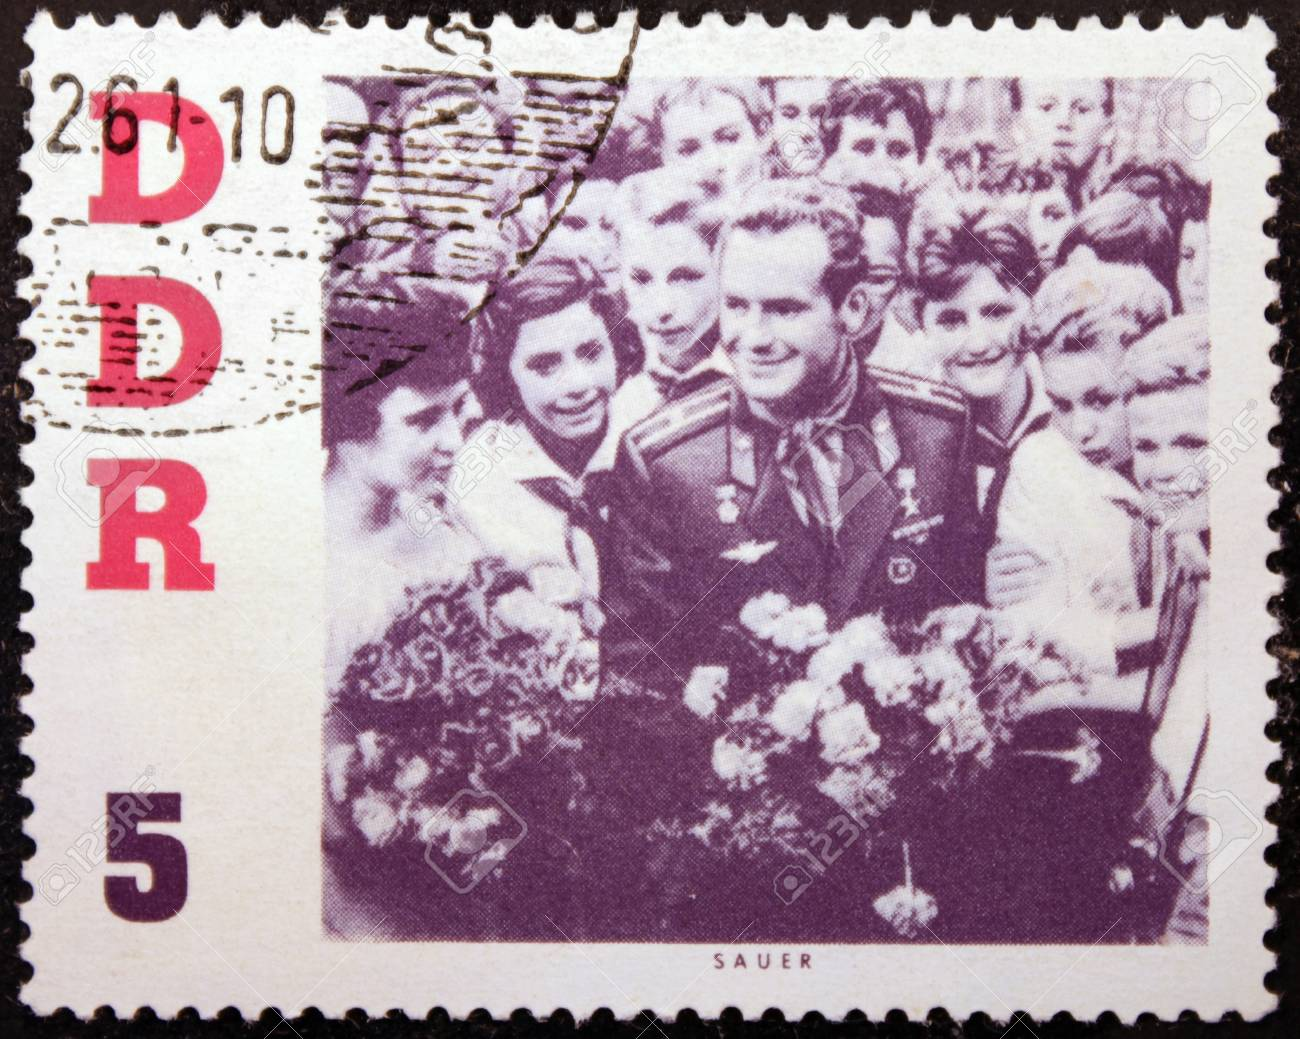 GERMANY - CIRCA 1961: a stamp printed by German Democratic Republic shows portrait of famous Soviet pilot and cosmonaut Gherman Titov, circa 1961  Stock Photo - 20187819